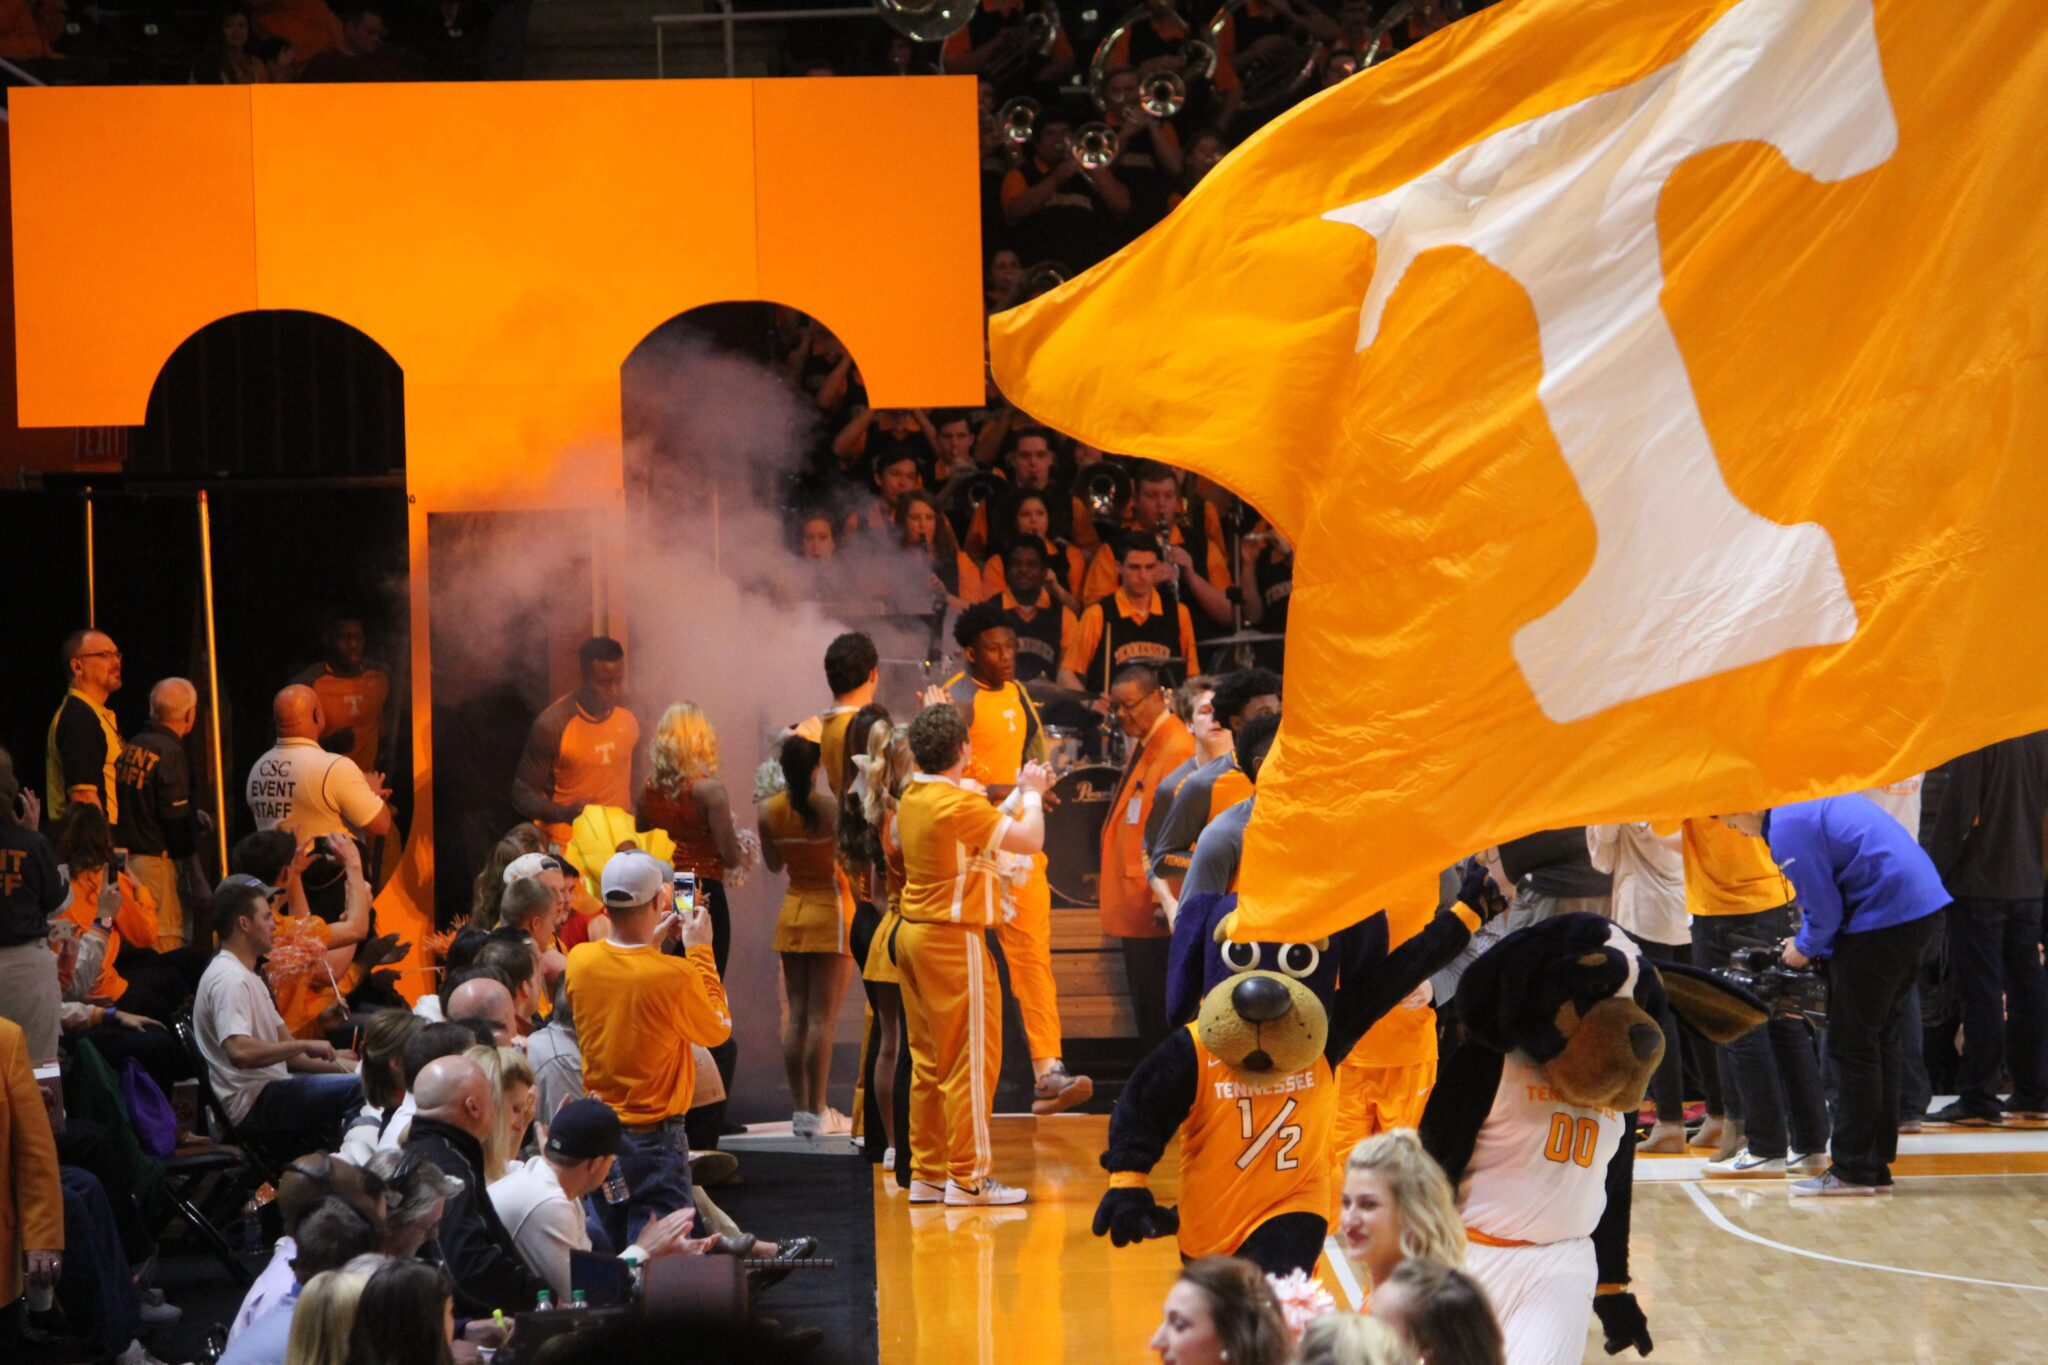 Tennessee's men's basketball team fell to Arkansas for the second time this season on Saturday // Photo by Sam Forman